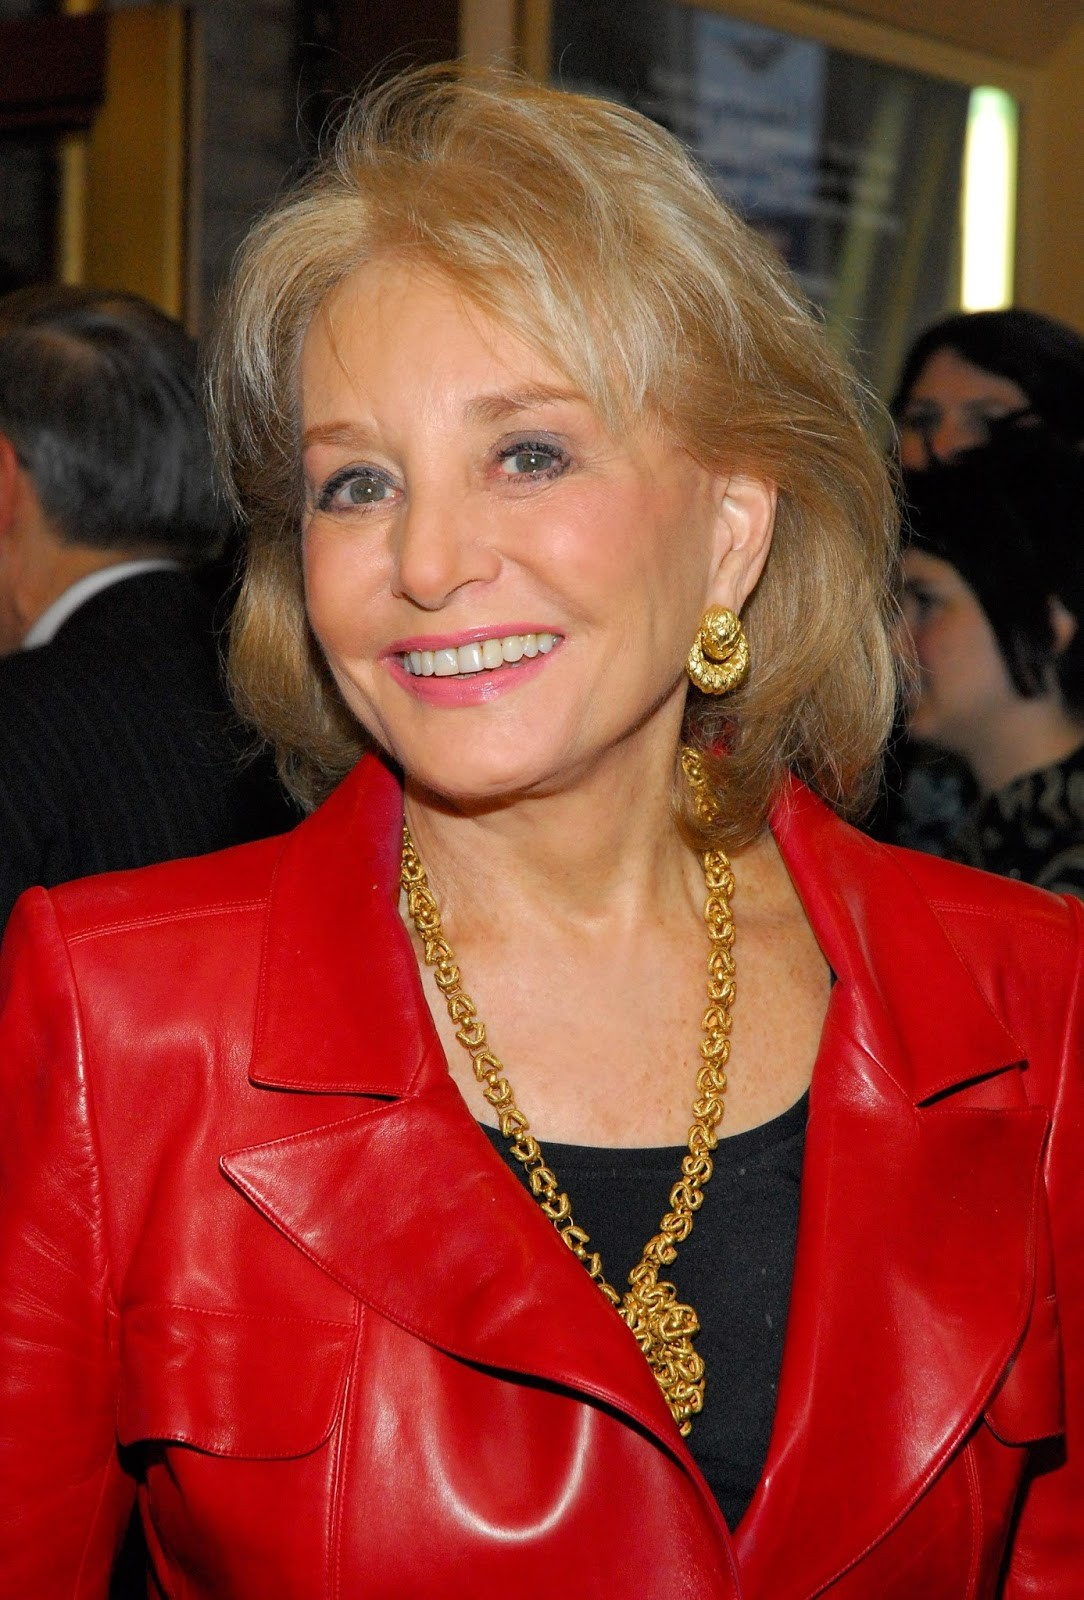 Barbara Walters and Her Daughter Appreciate Each Other's Quirks